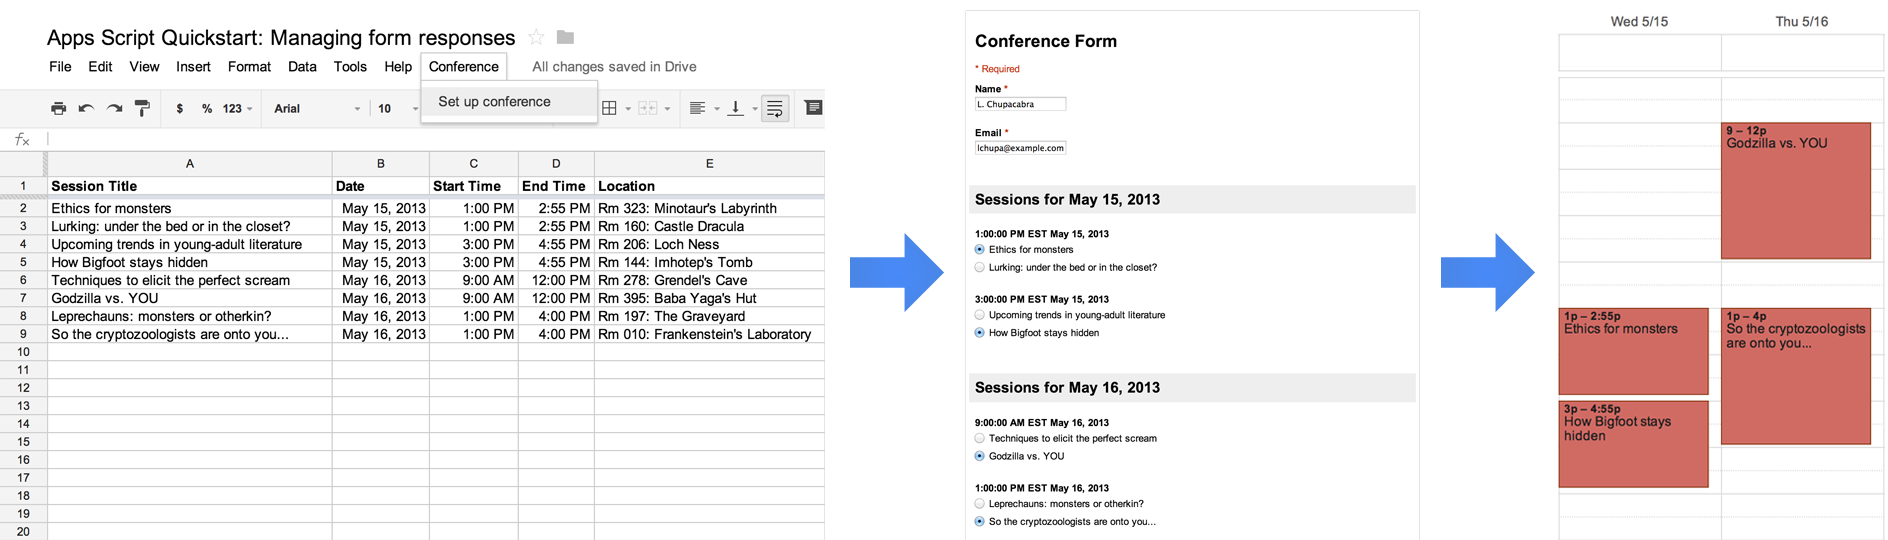 Quickstart: Managing Responses for Google Forms | Apps